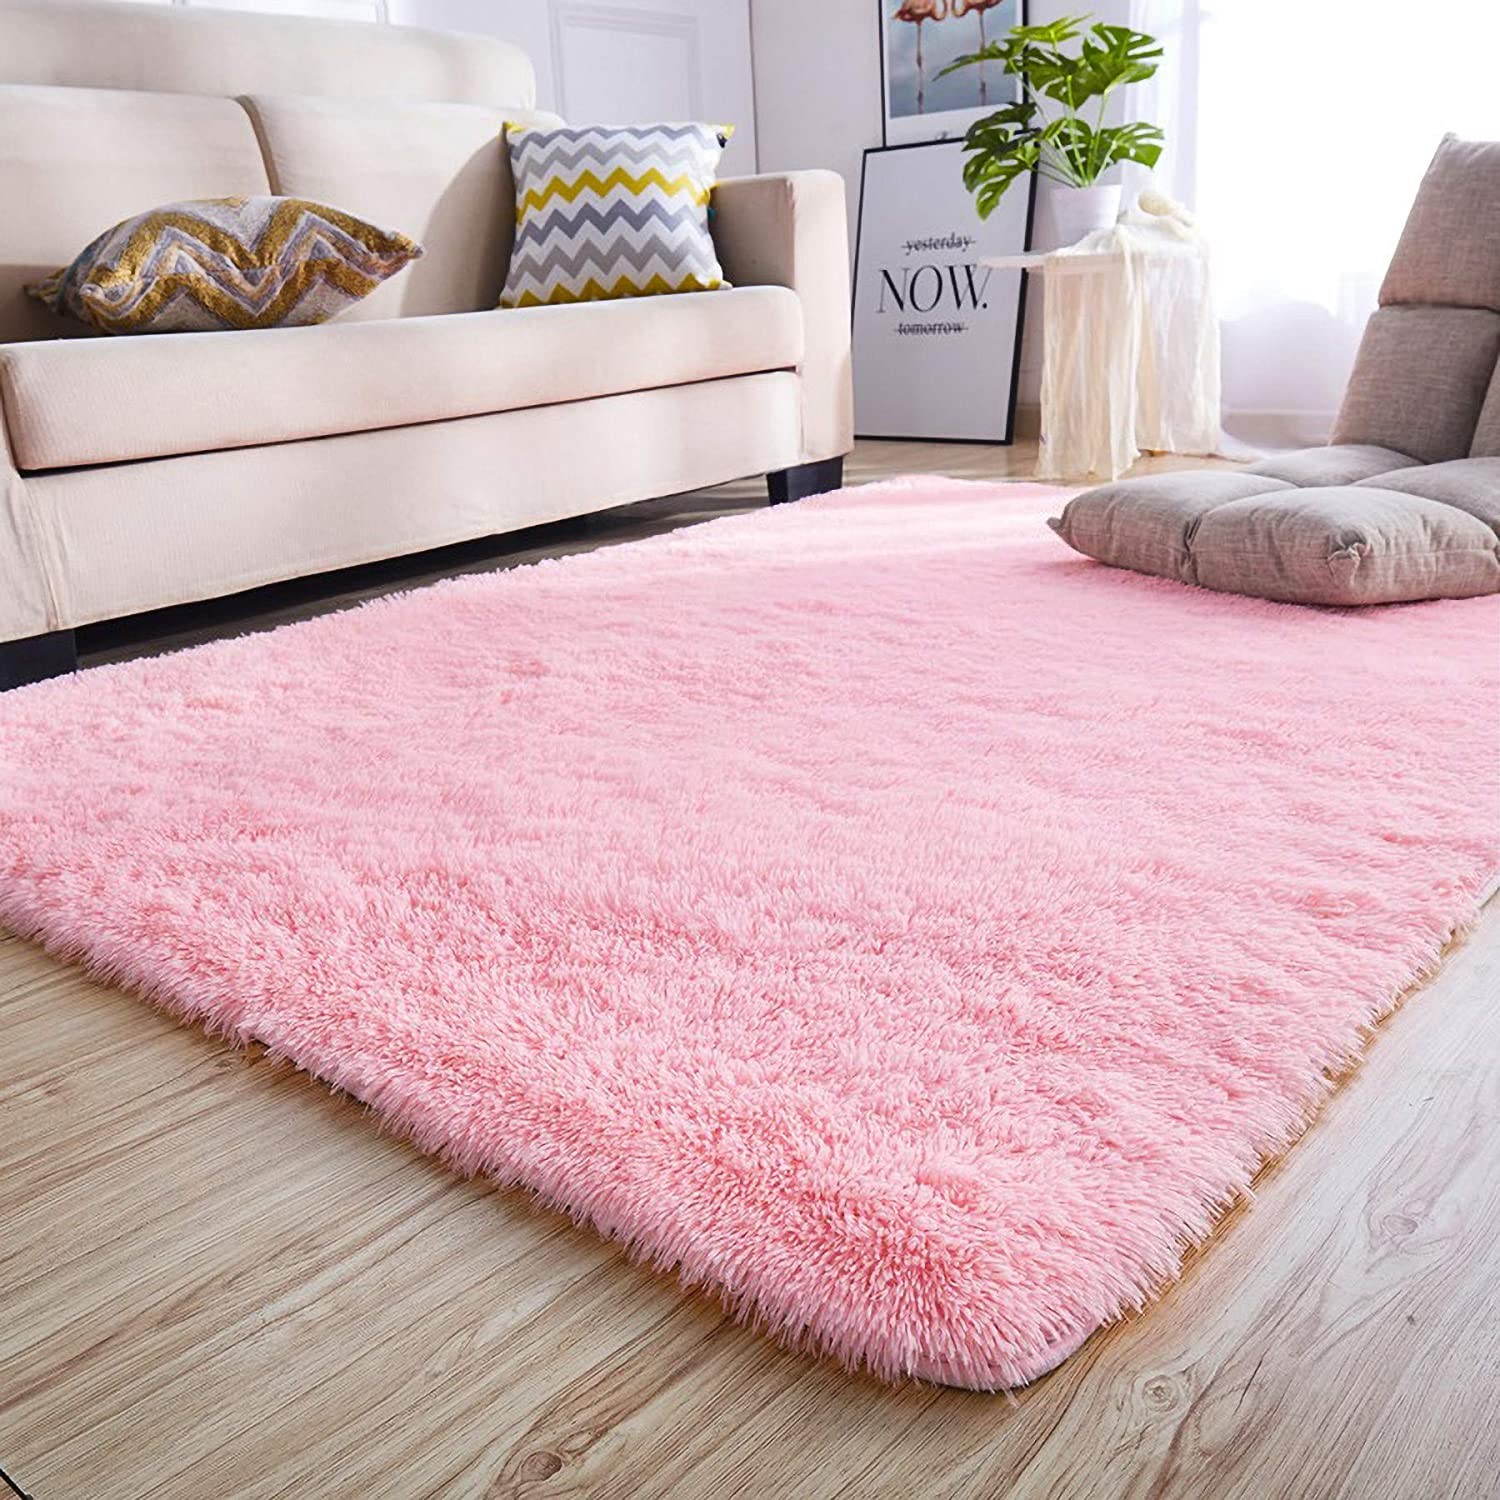 Junovo Rectangle Ultra Soft Area Rugs Fluffy Carpets for Bedroom Living Room Shaggy Floor Rug Home Decor Mats, 4 x 5.3ft, Pink